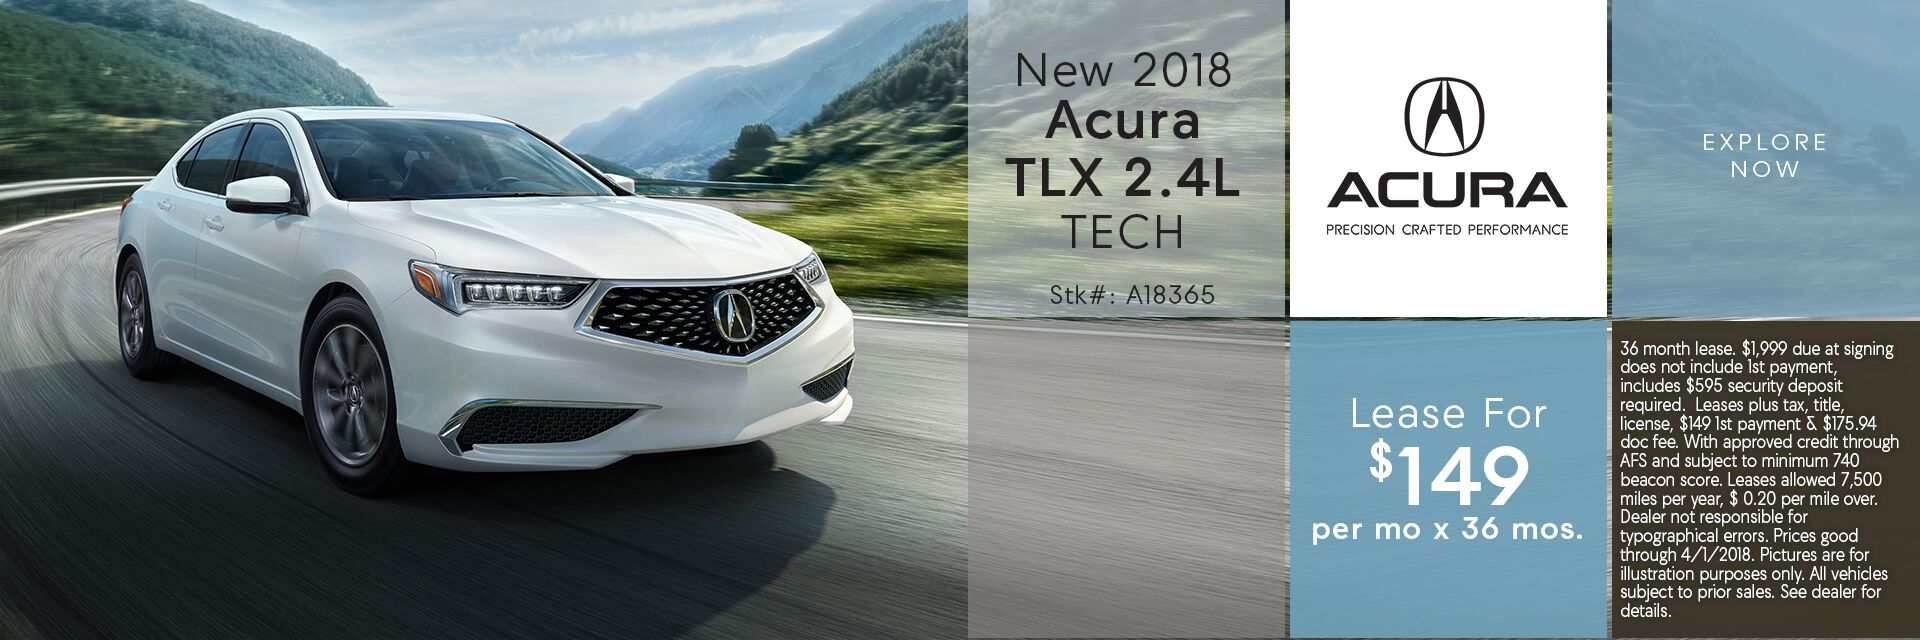 Lease the New 2018 Acura TLX